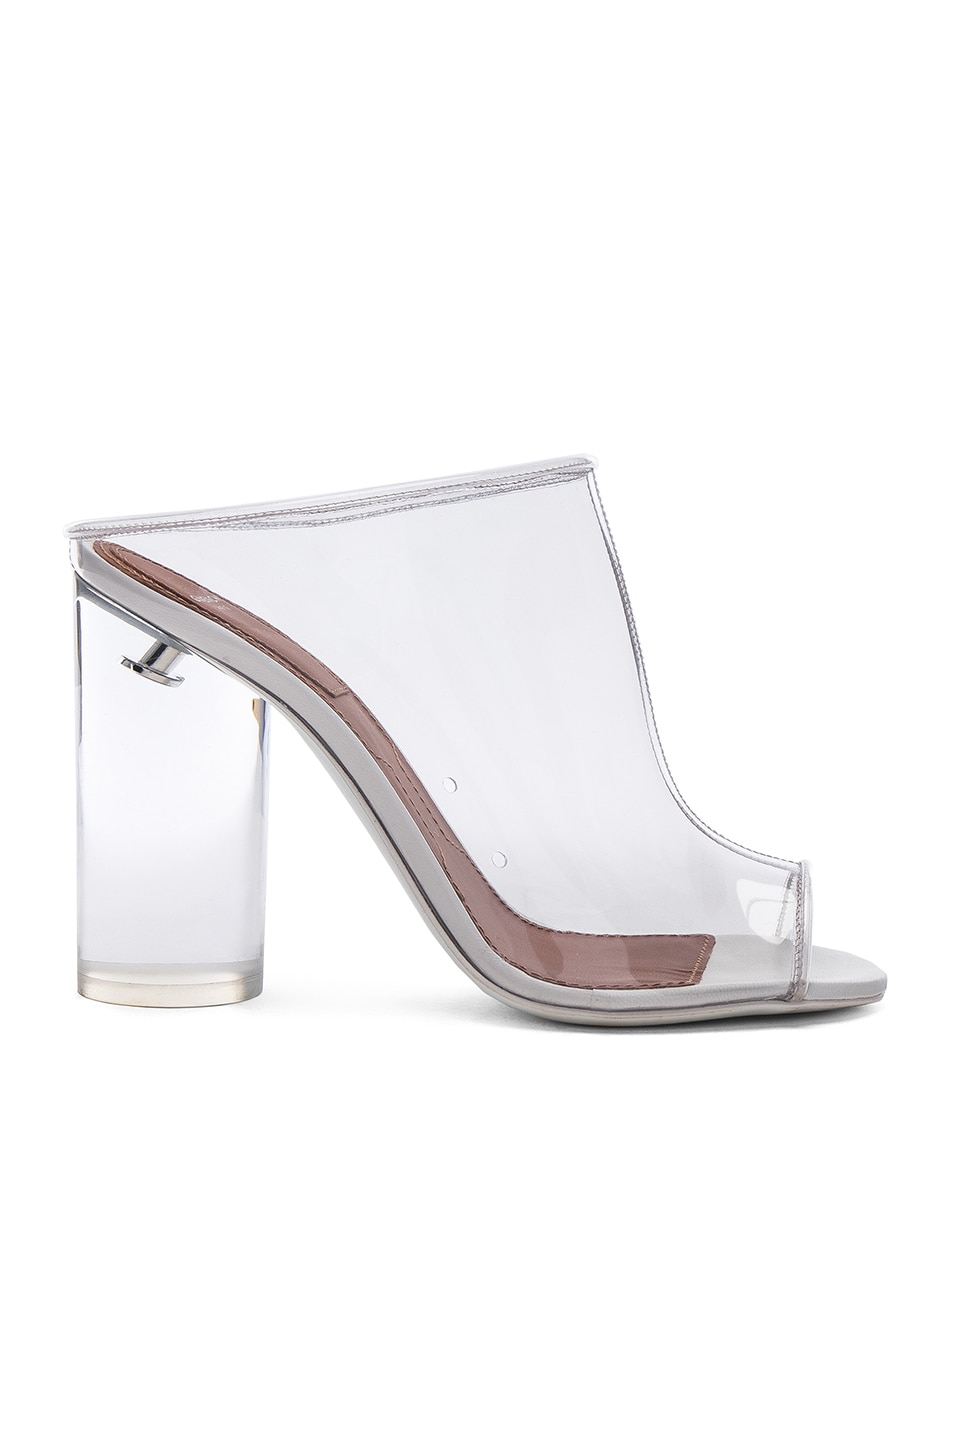 113e9a55dc4 Image 1 of Givenchy PVC Mules in Clear